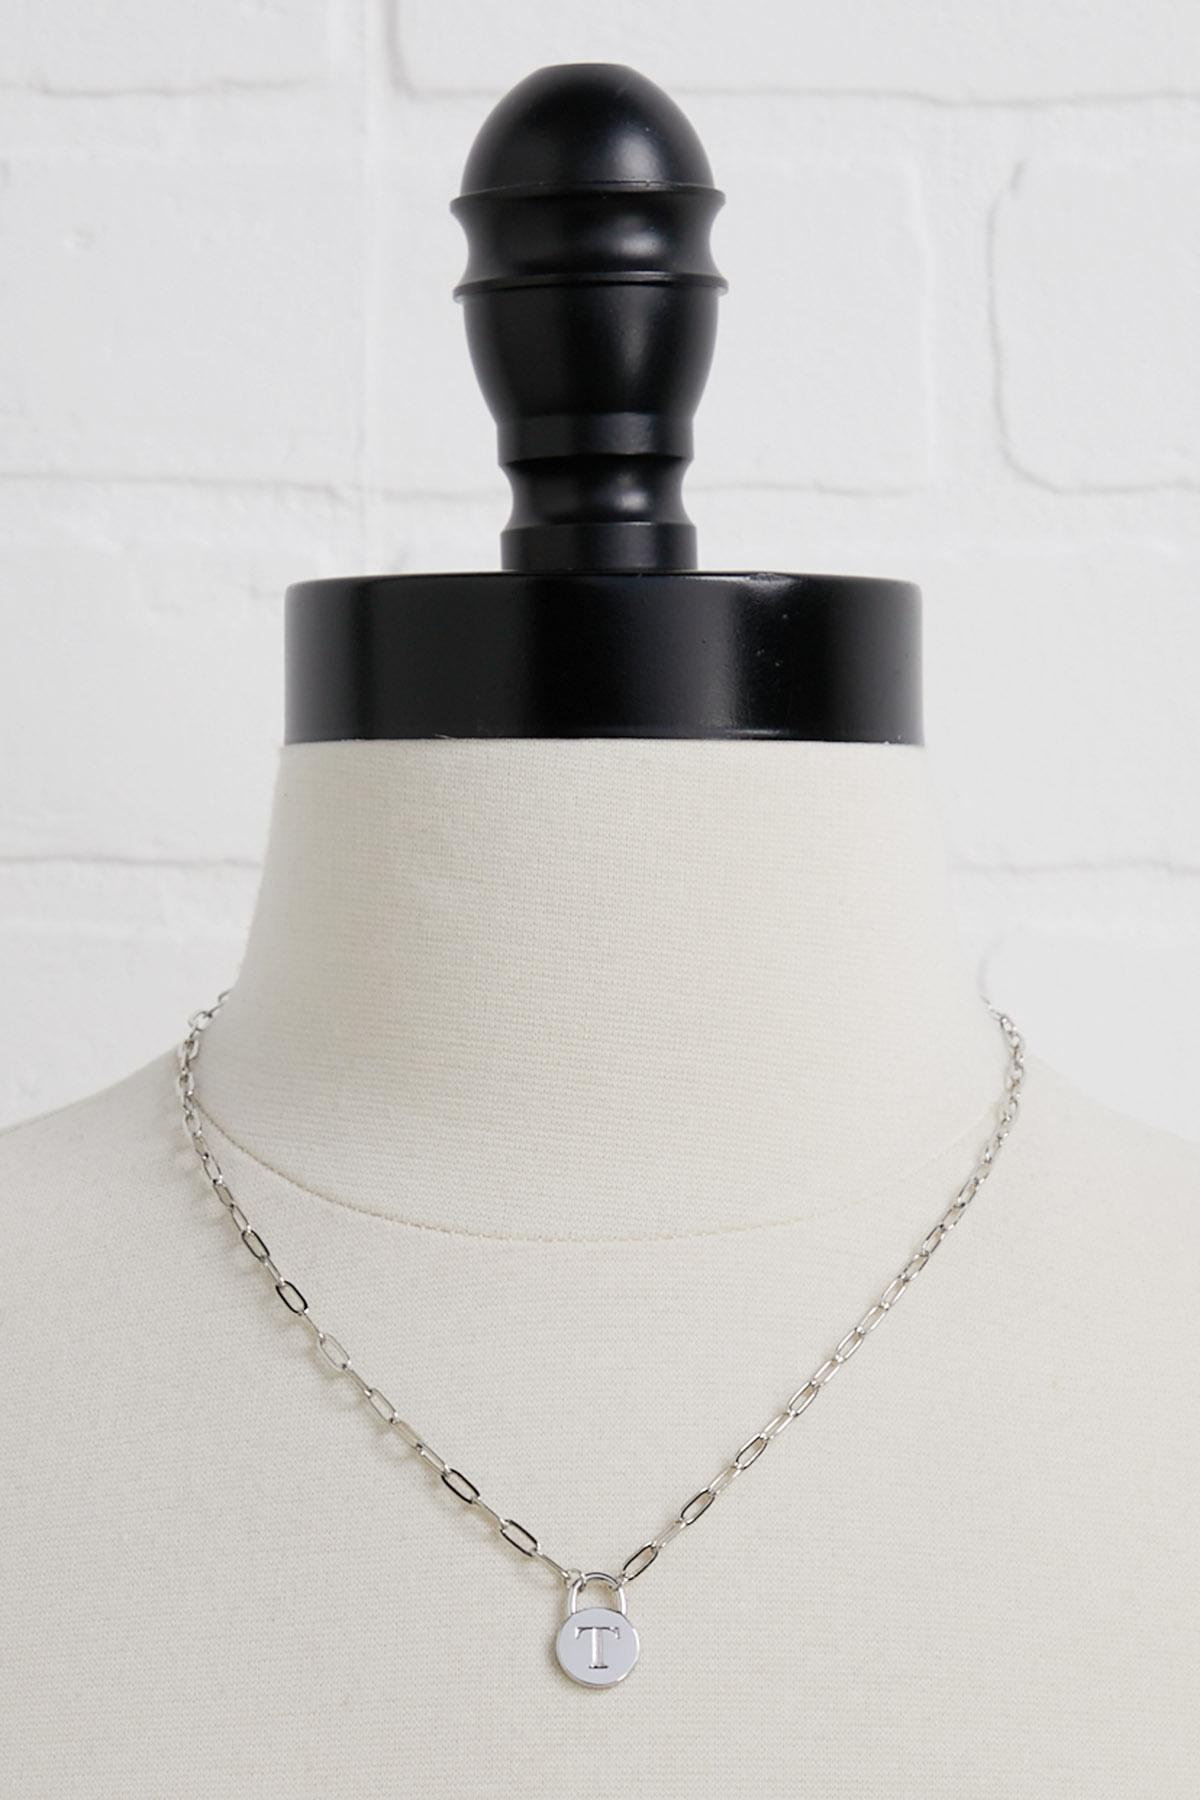 Silver T Necklace